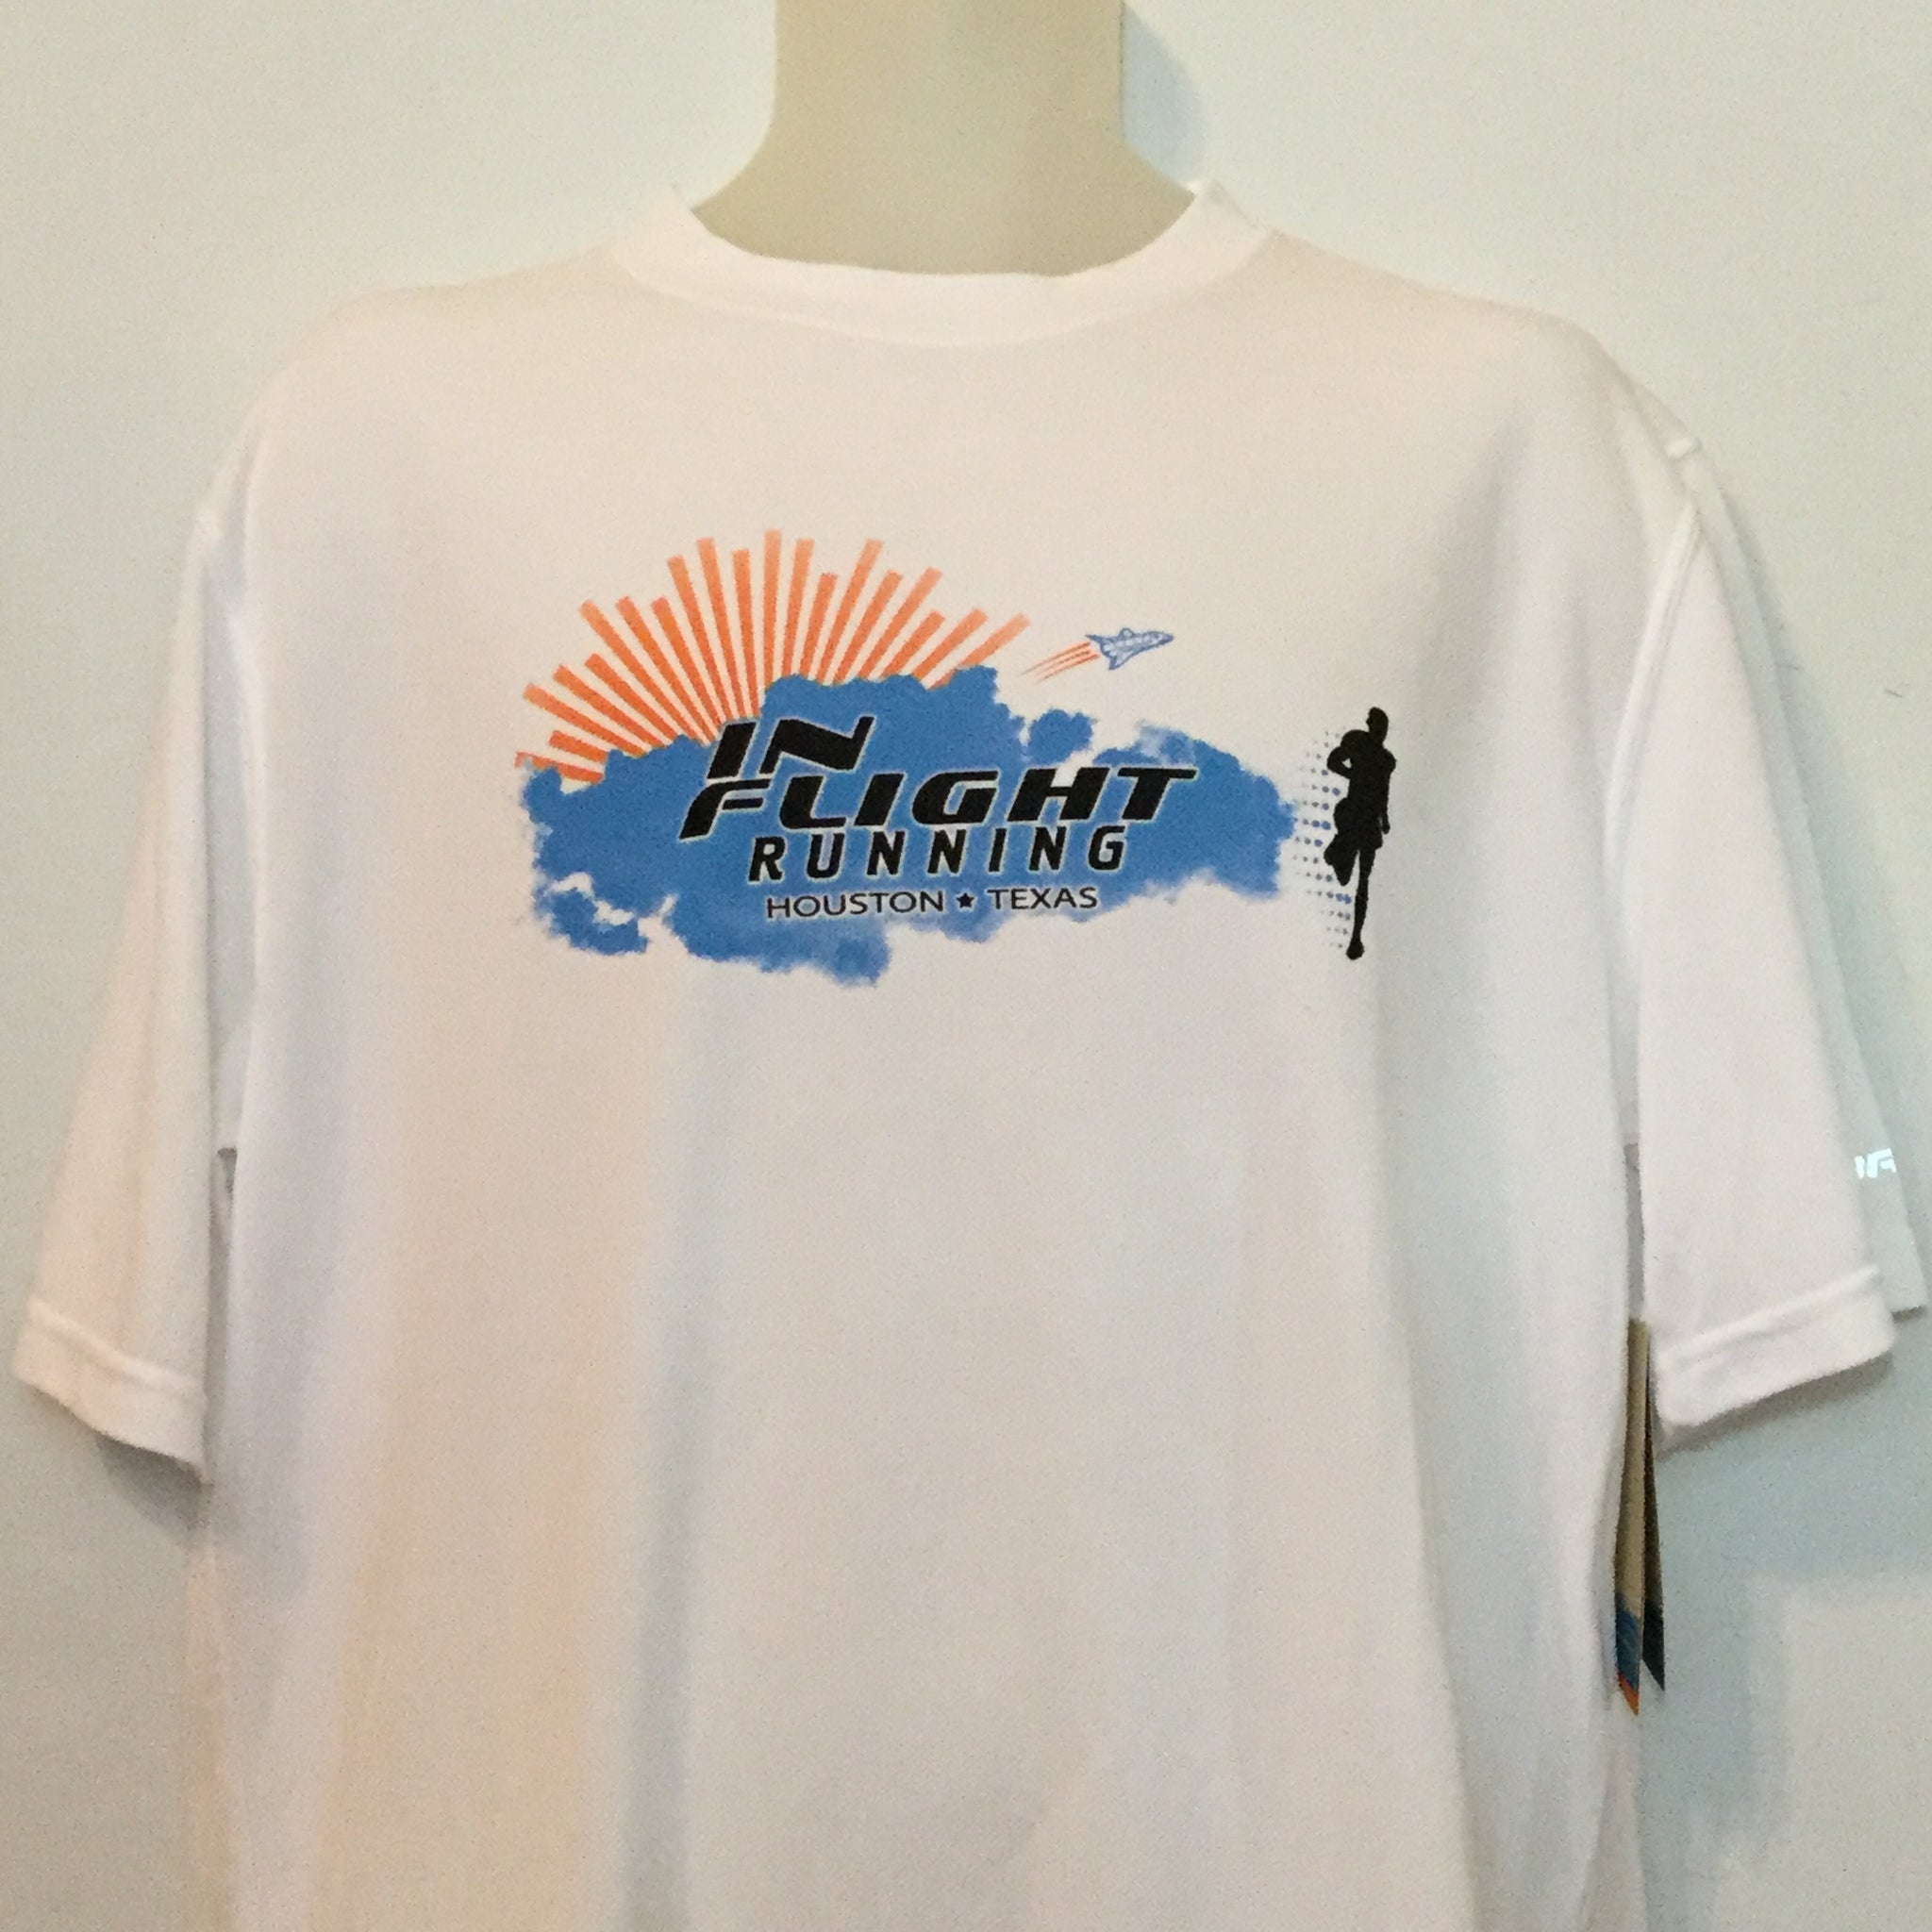 2010-11 In Flight Running Men's Team T -  Brooks Short Sleeve Dry Fit - Space Shuttle - White